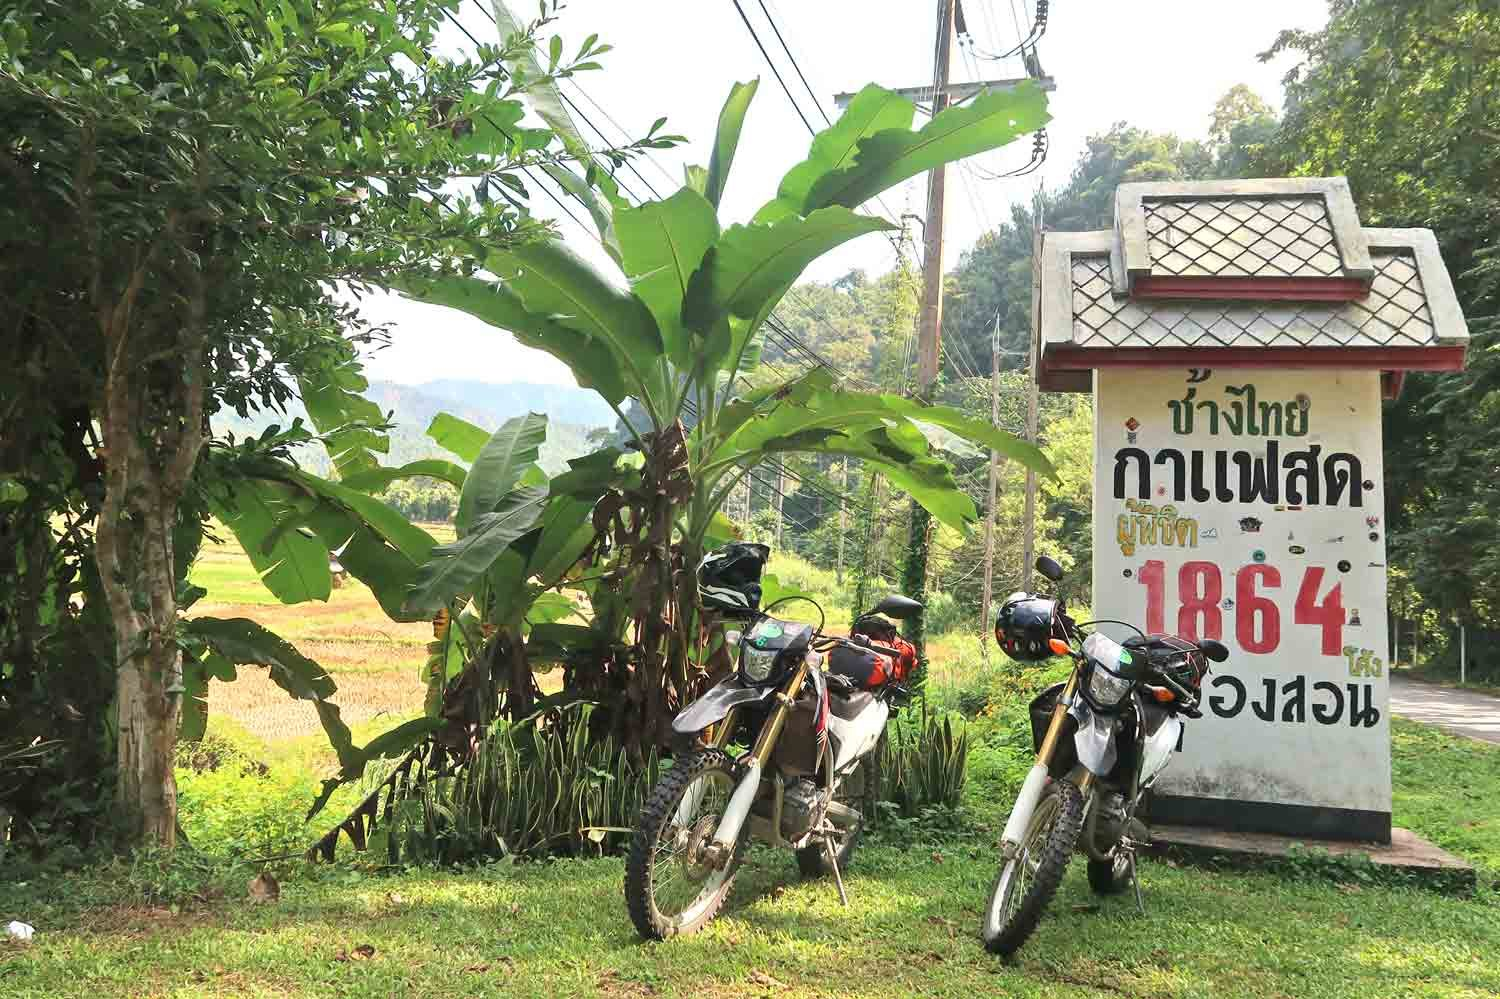 Honda CRF250 auf dem MAe Hong Son Loop - Weltreise Highlights